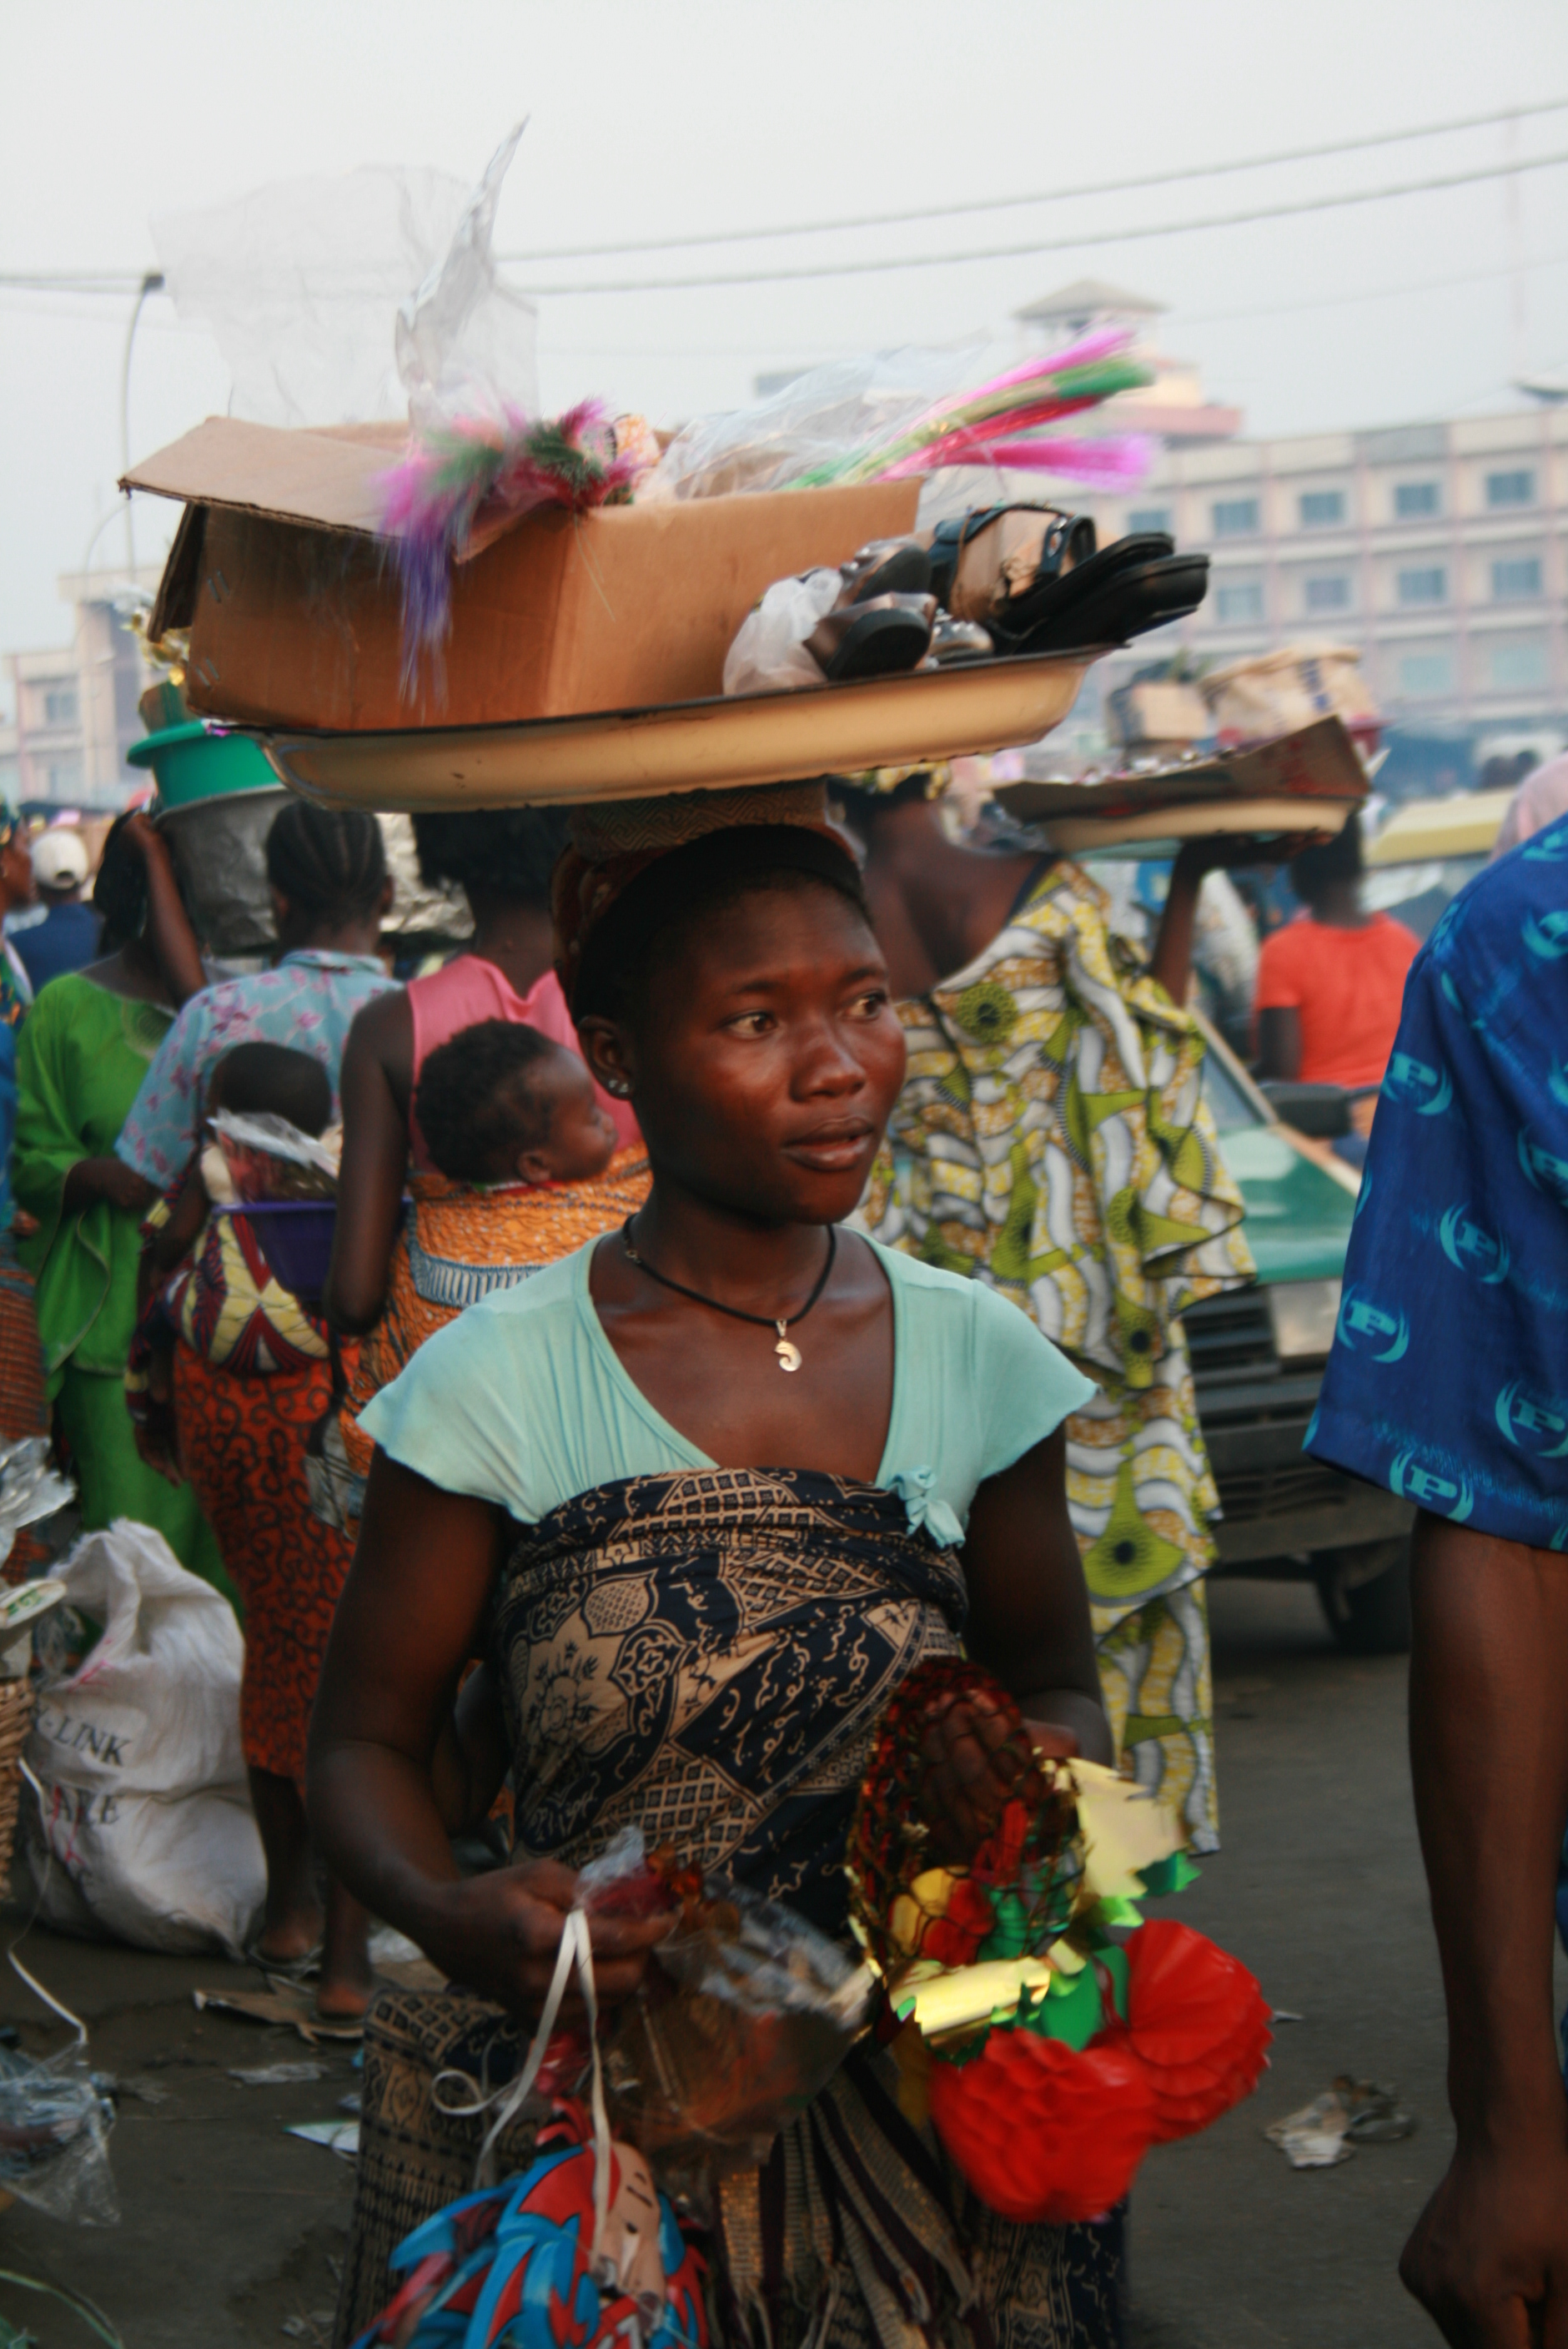 Vendors crowd one another in Cotonou, Benin's Dantokpa market